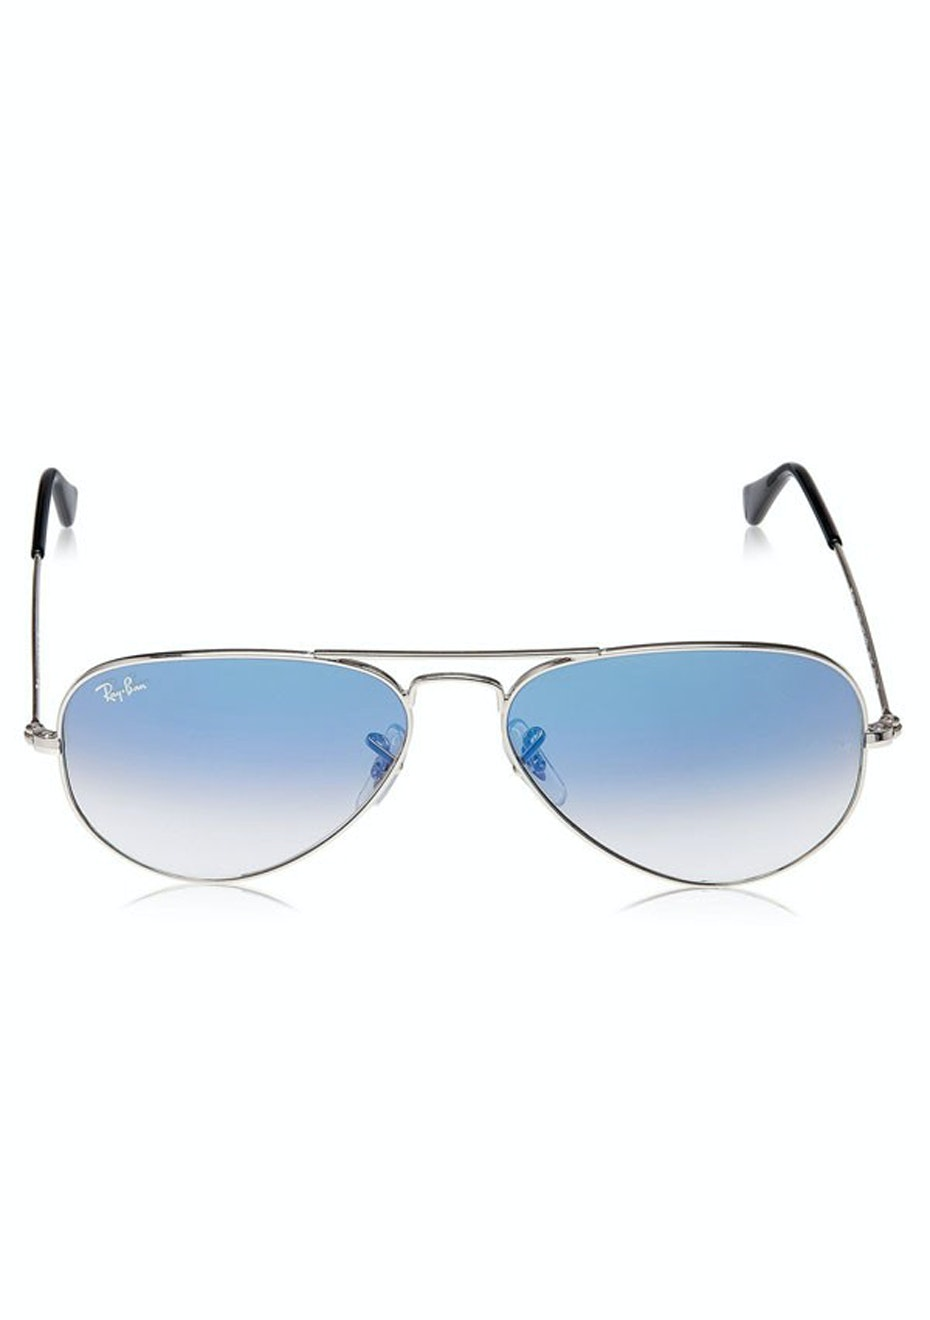 Ray-Ban -  RB3025 003/3F/58 - 